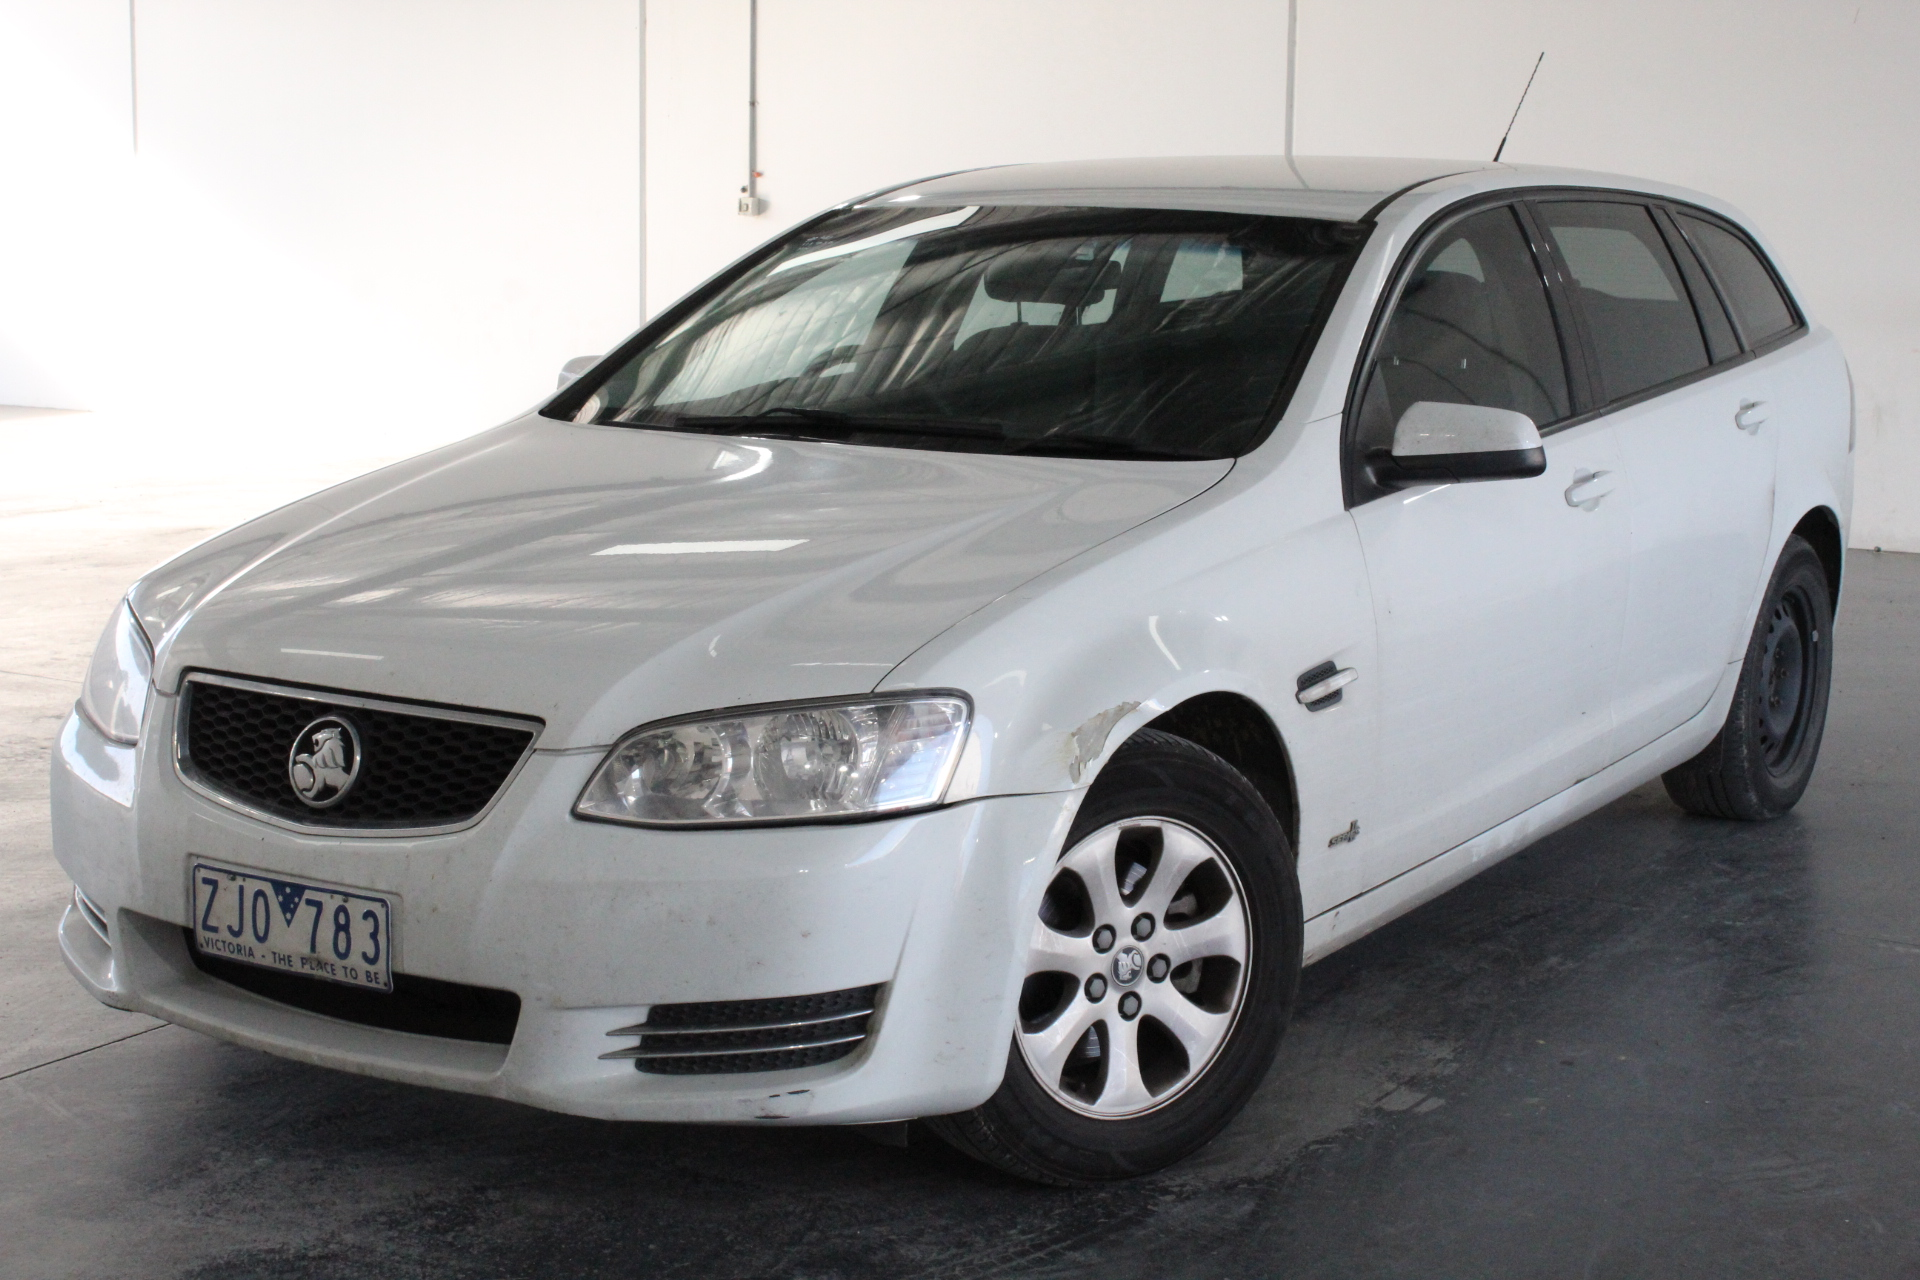 2012 Holden Sportwagon Omega VE Automatic Wagon